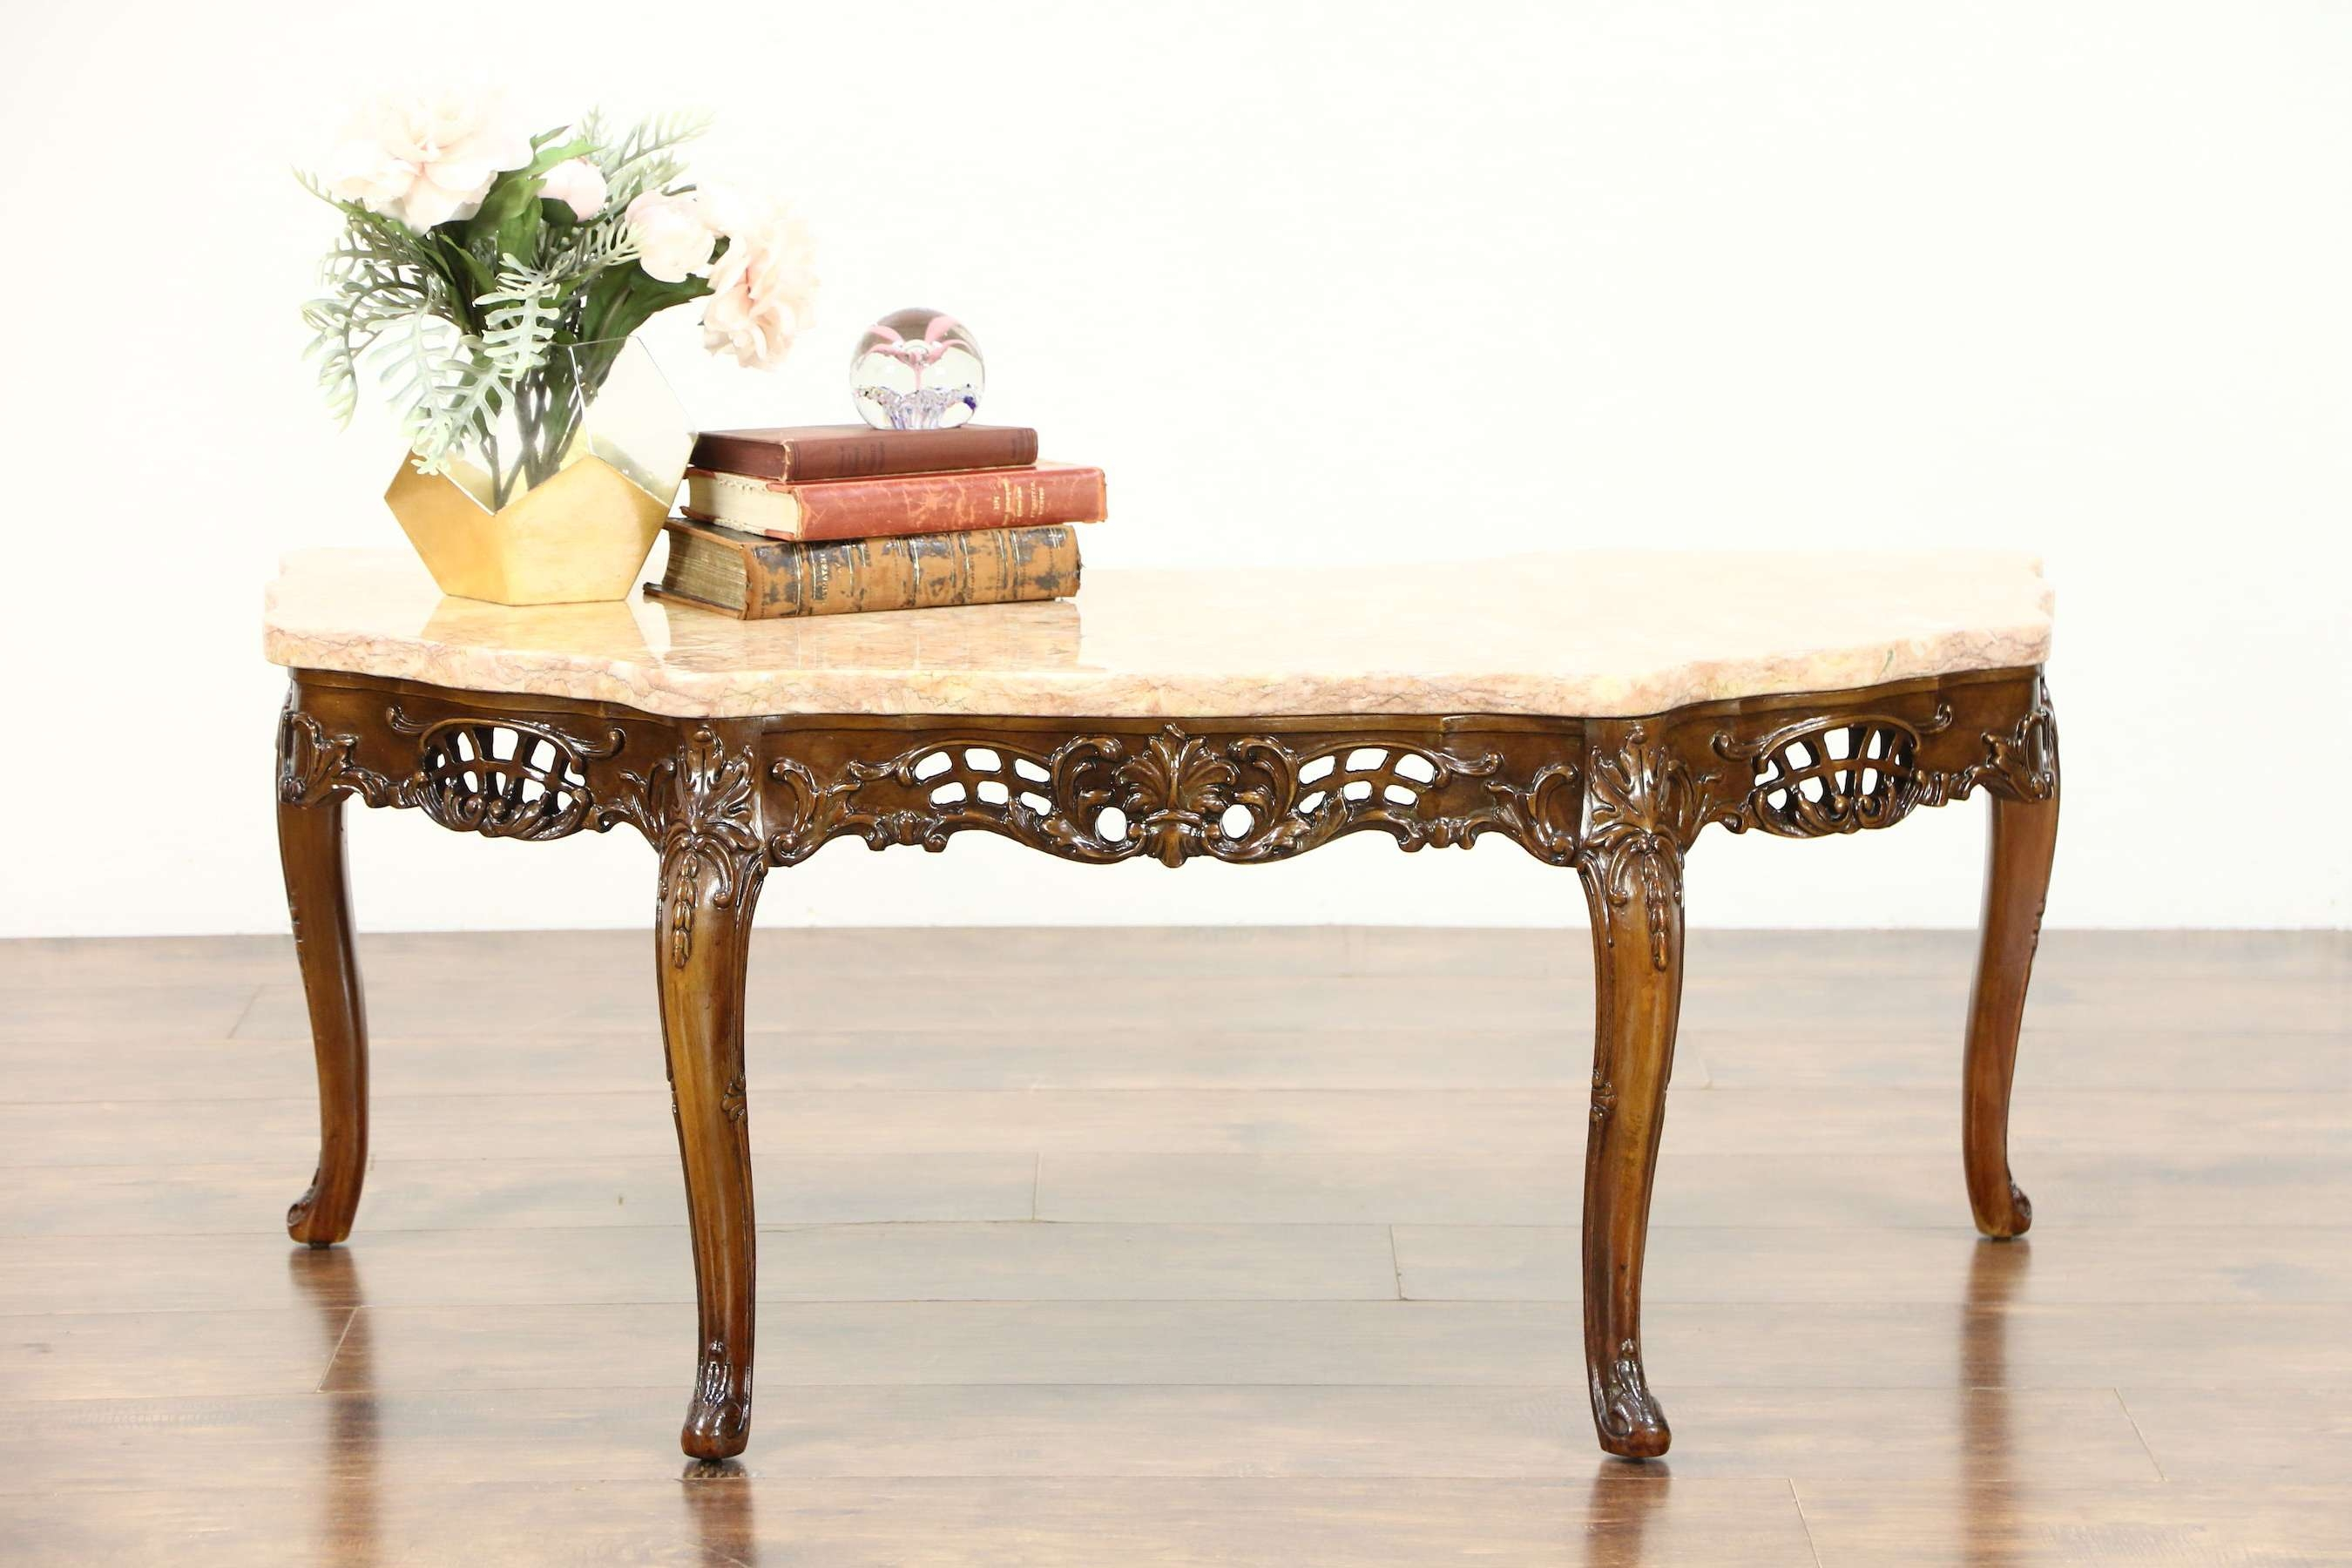 Sold – French Style Carved 1940's Vintage Coffee Table, Rose Pertaining To Famous French Style Coffee Tables (View 18 of 20)